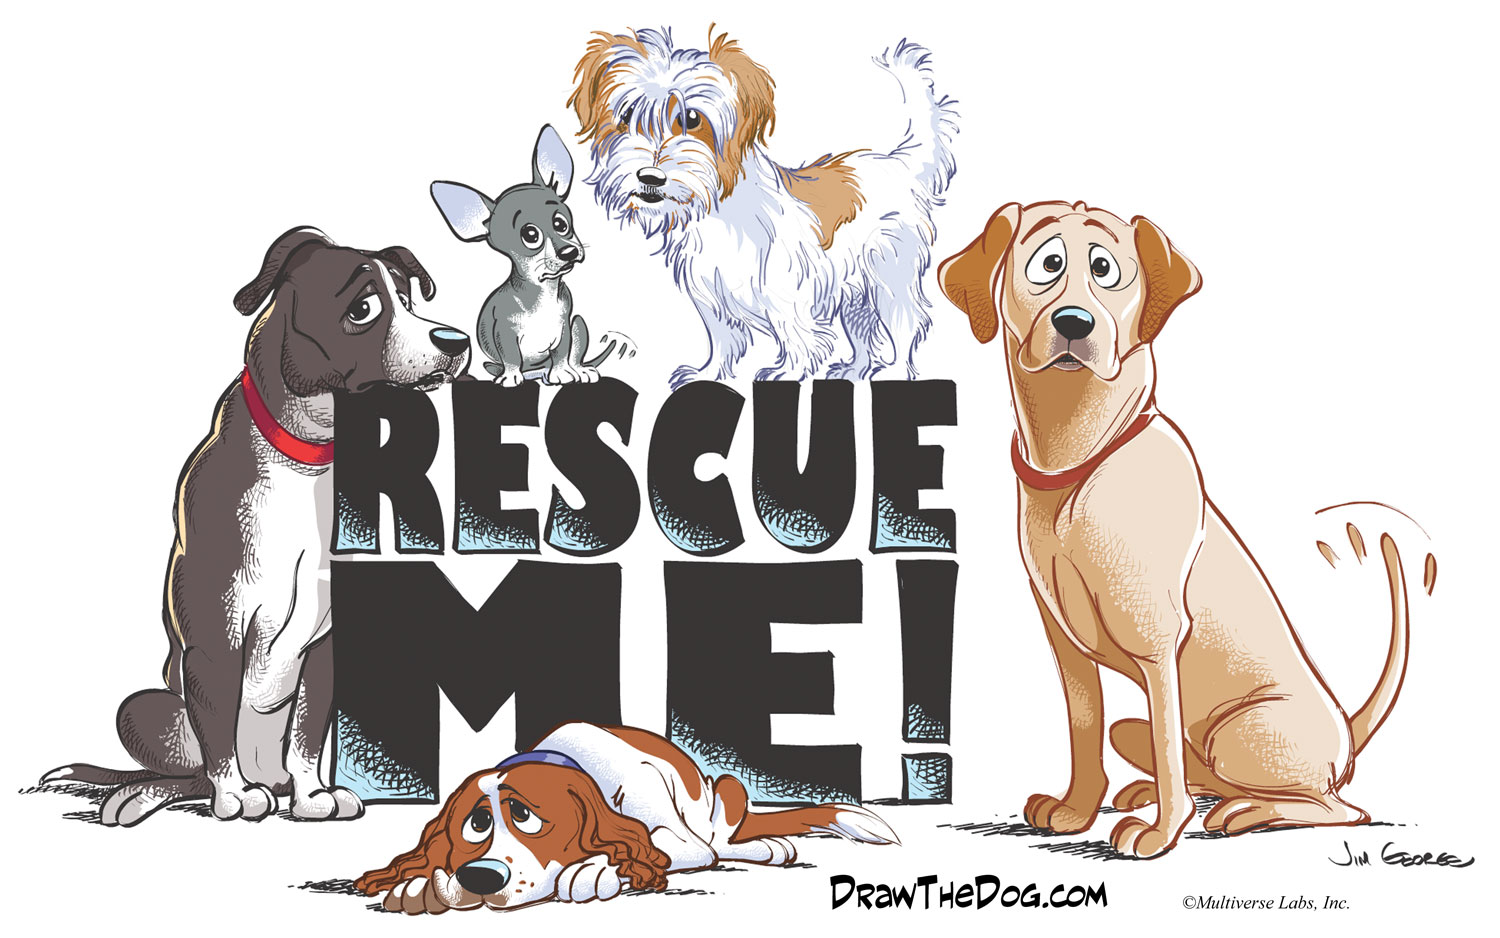 Draw the Dog cartoons AdoptaPet Blog